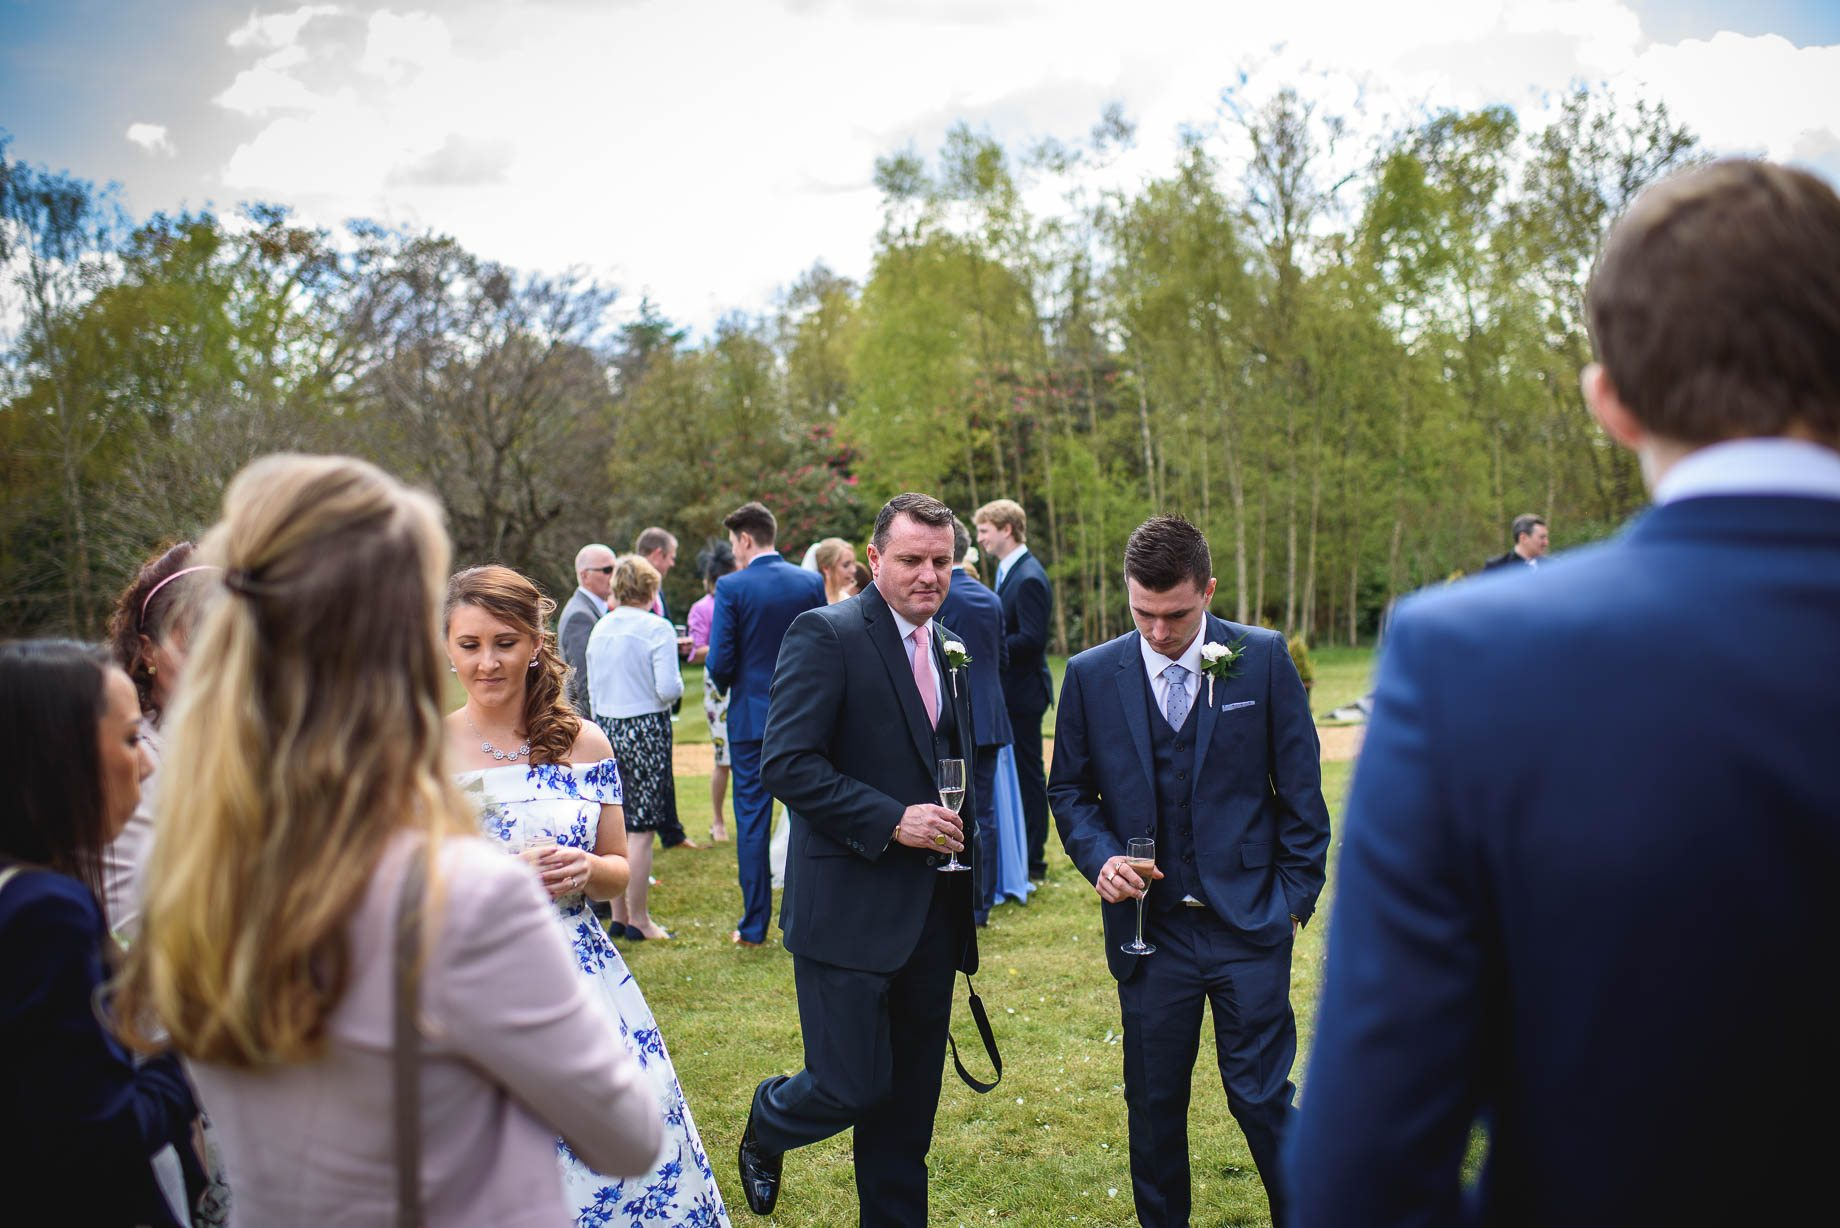 Hampshire wedding photography by Guy Collier - Emily and Tom (73 of 164)